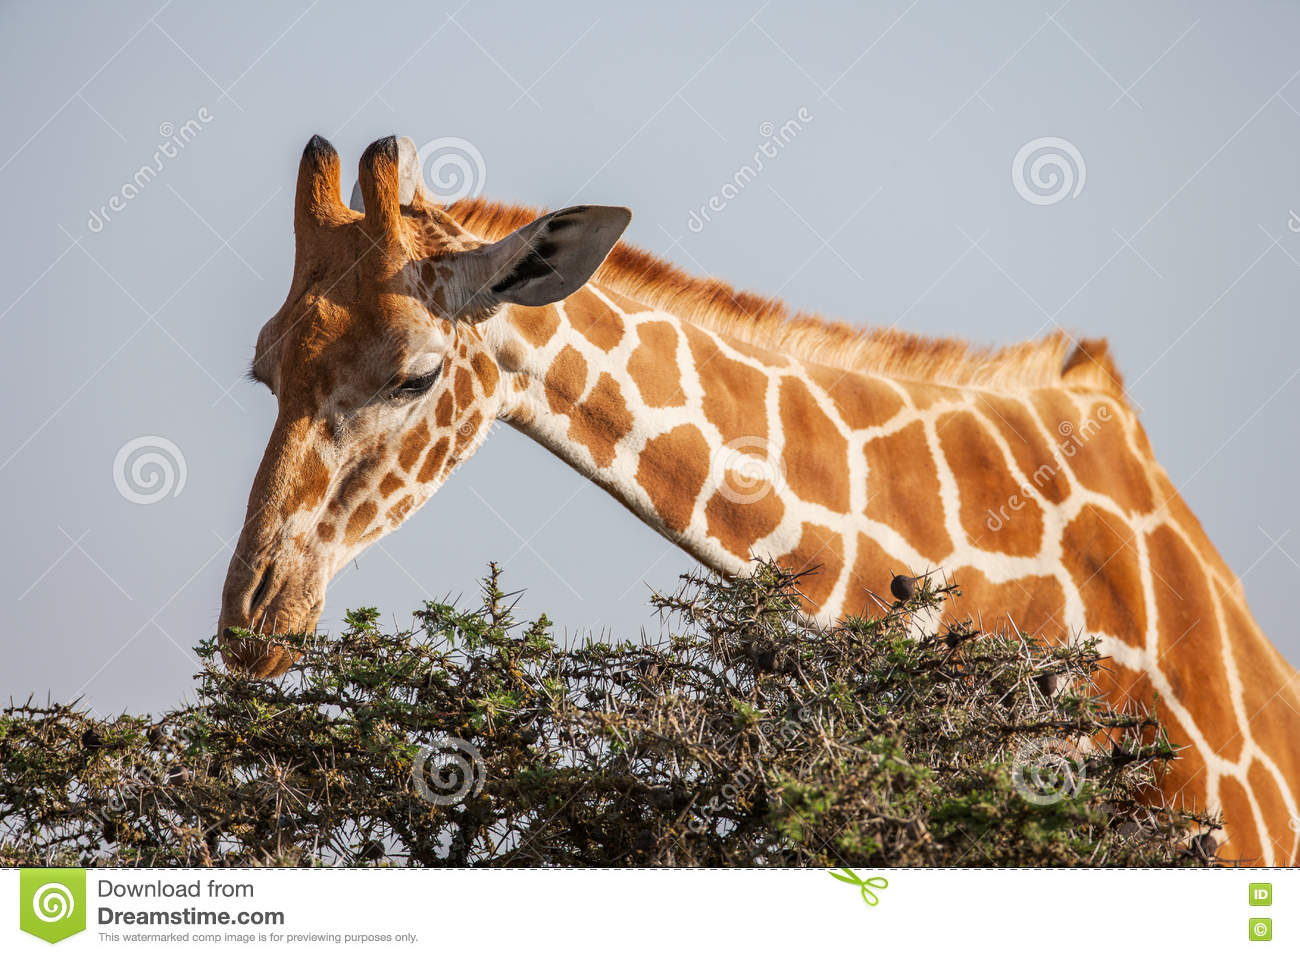 Giraffe eating leaves from tree top. Close up